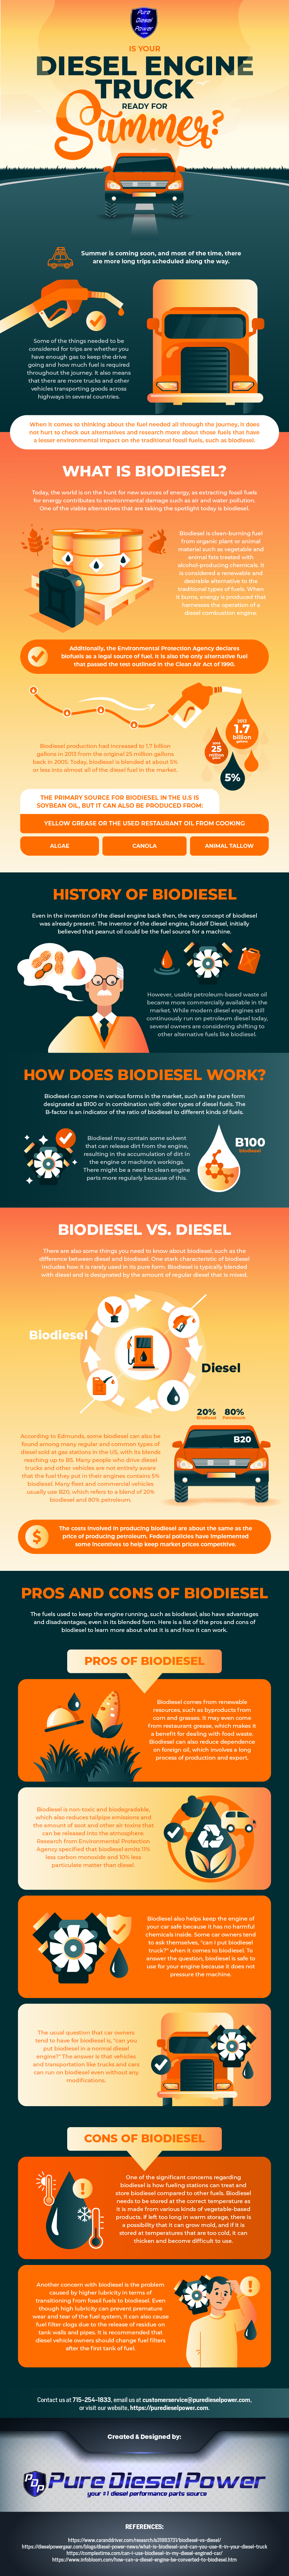 is-your-diesel-engine-truck-ready-for-summer-infographic